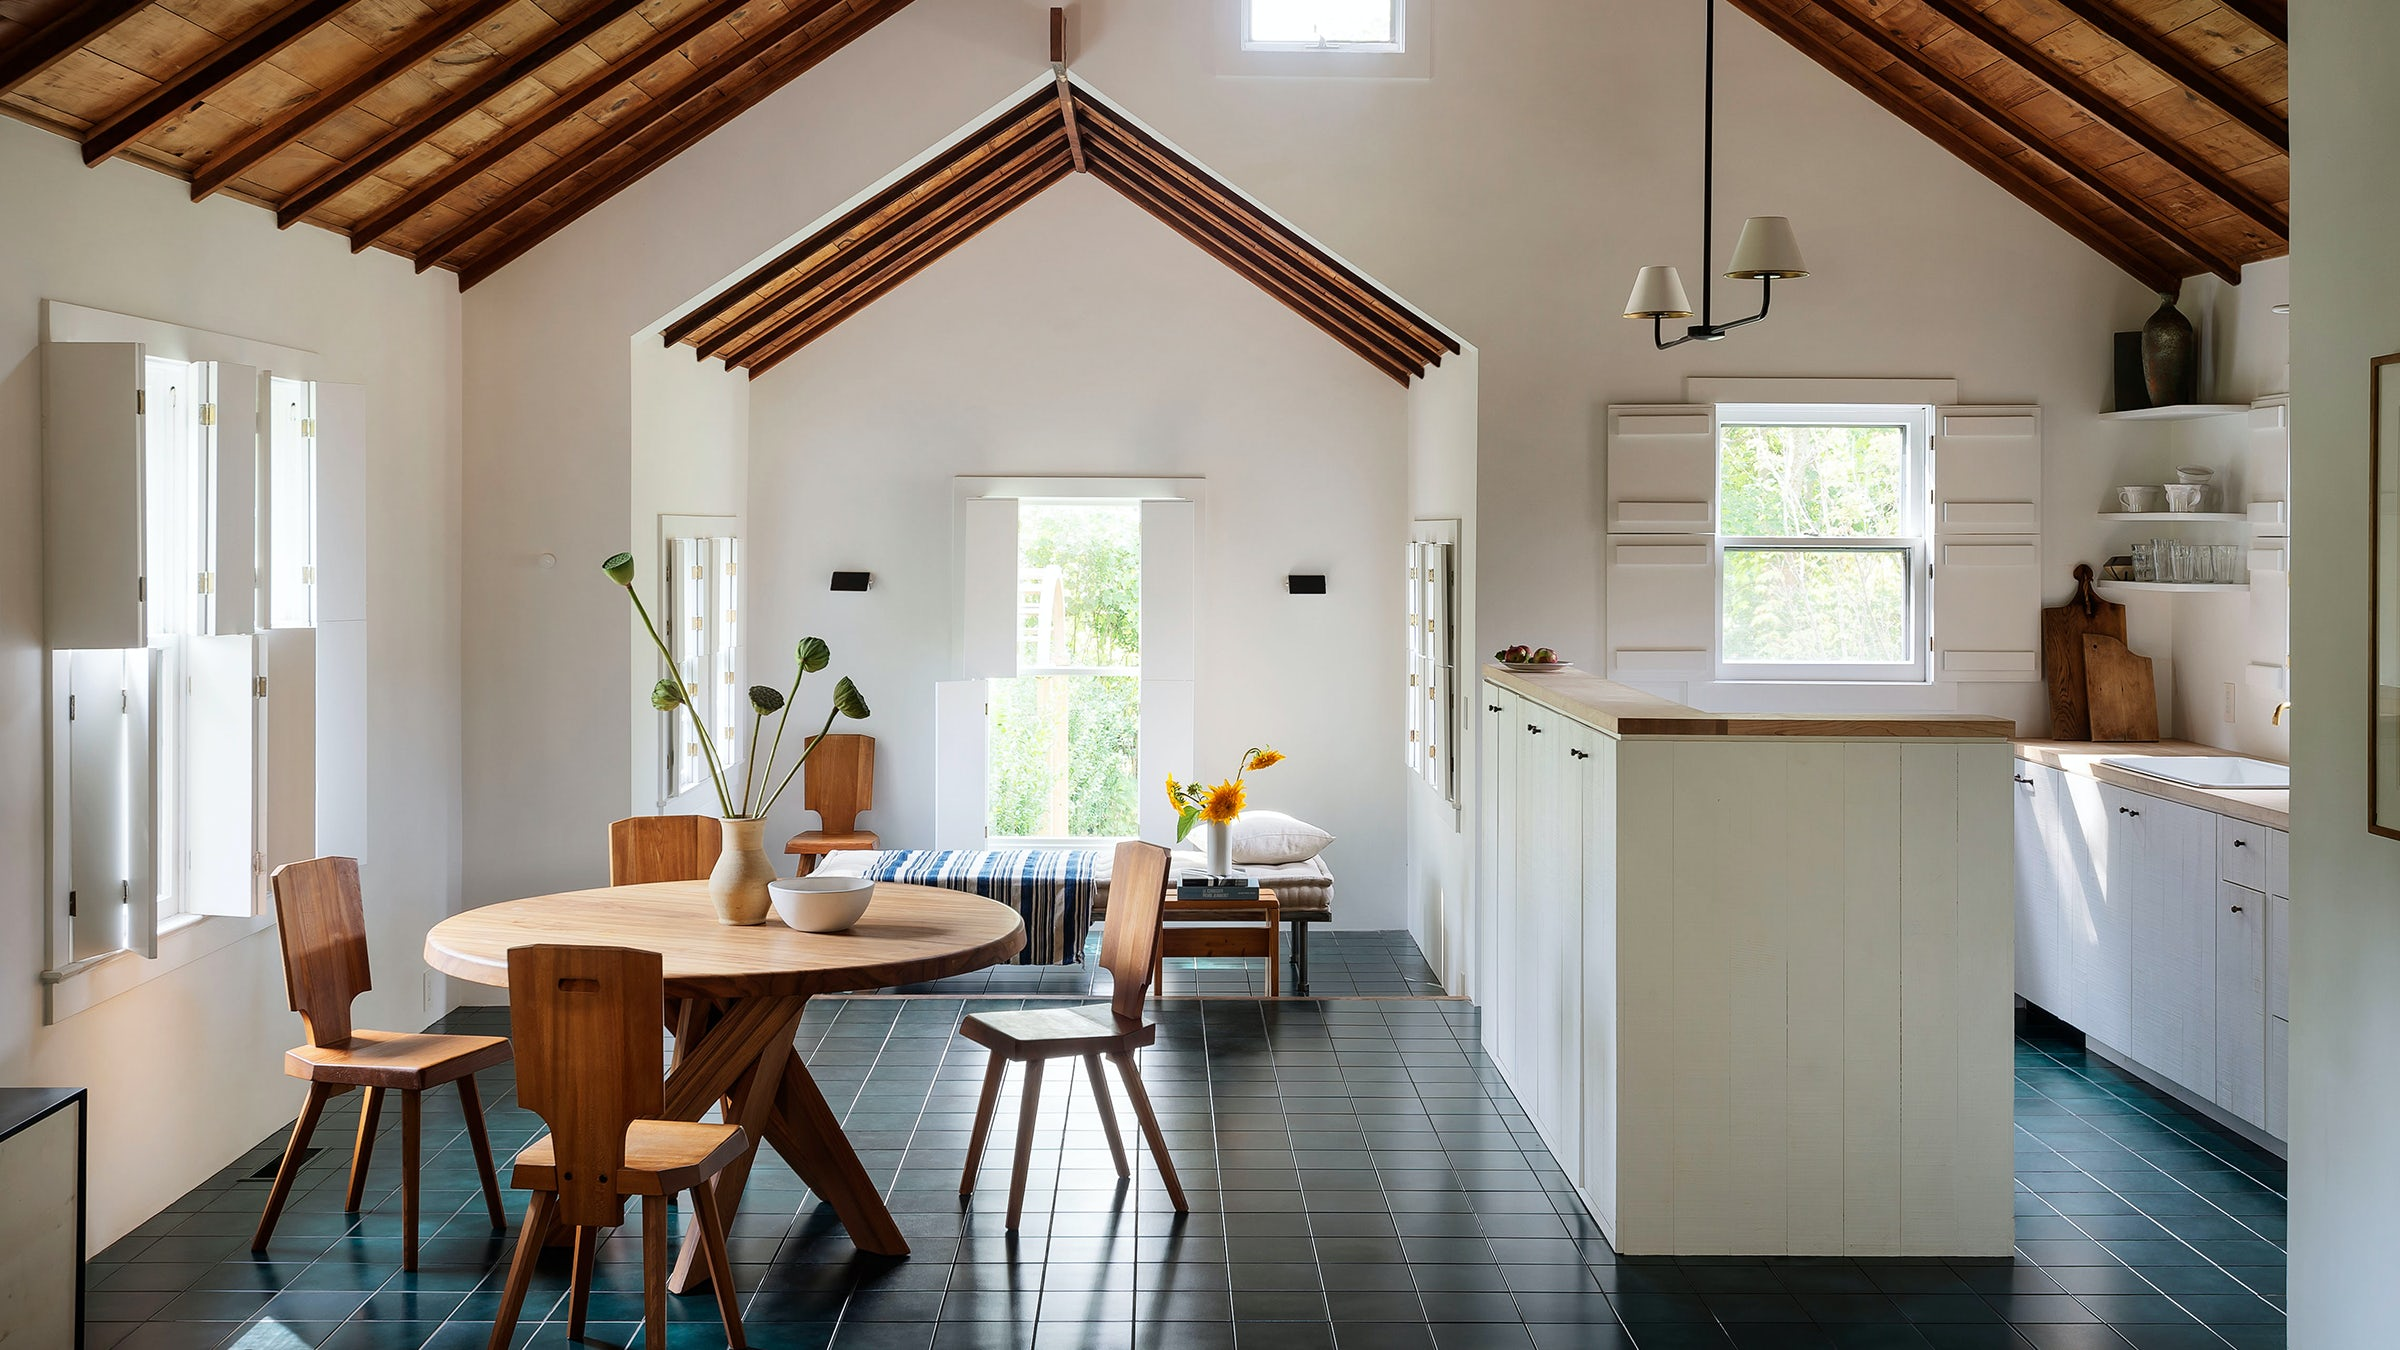 gallery image for Shelter Island House